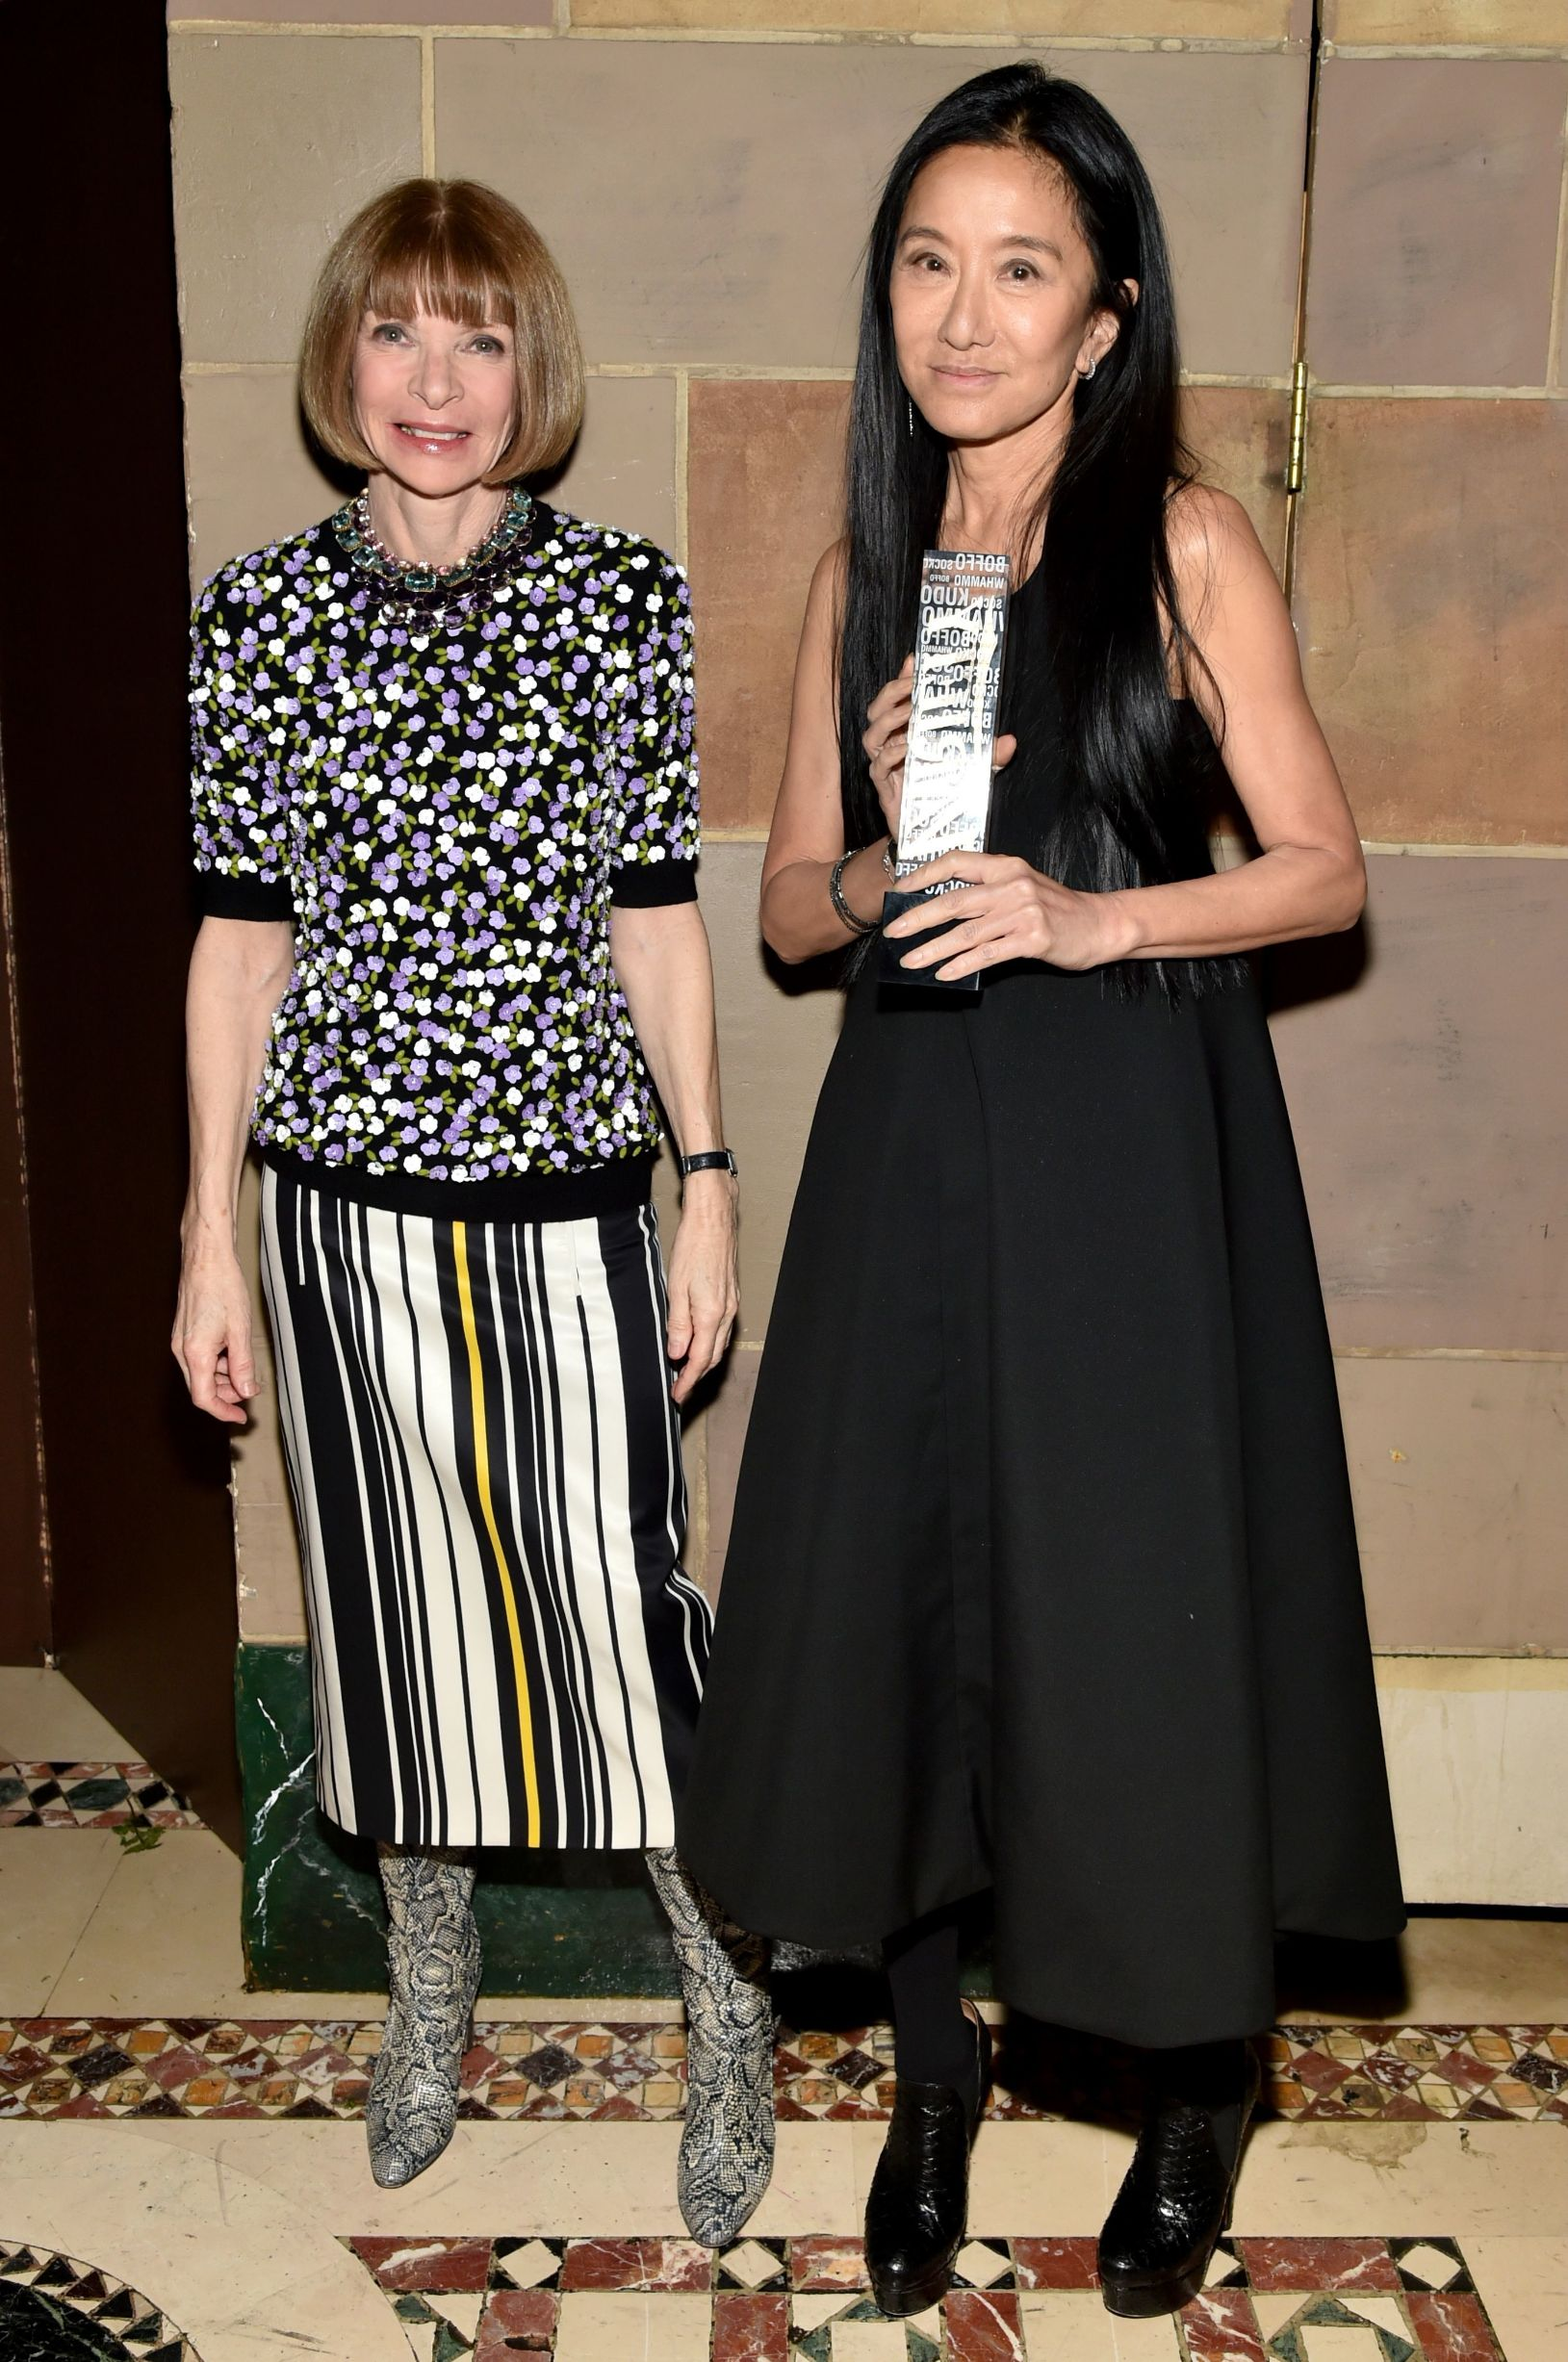 /Anna Wintour, Vera Wang Variety's Power of Women NY Presented by Lifetime, Inside, New York, America - 08 Apr 2016,Image: 280934469, License: Rights-managed, Restrictions: , Model Release: no, Credit line: Variety / Shutterstock Editorial / Profimedia